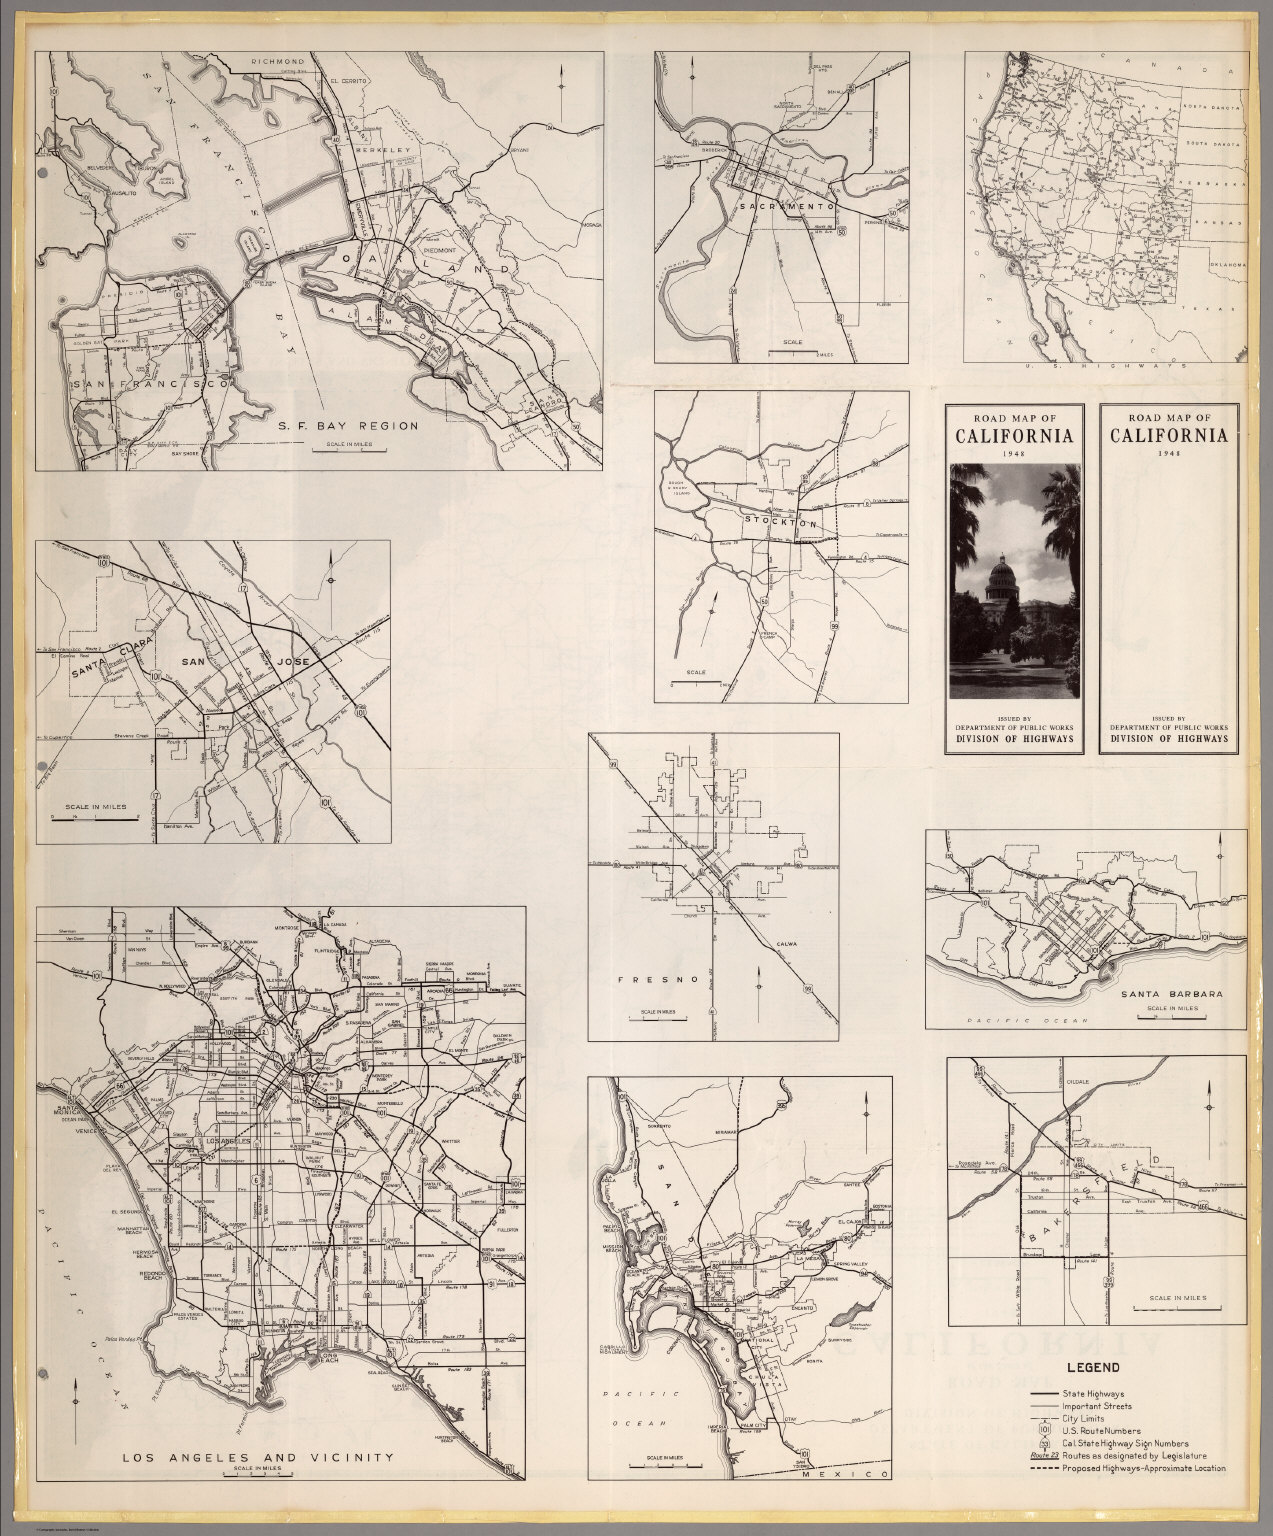 (Verso) Road Map of the State of California, 1948.